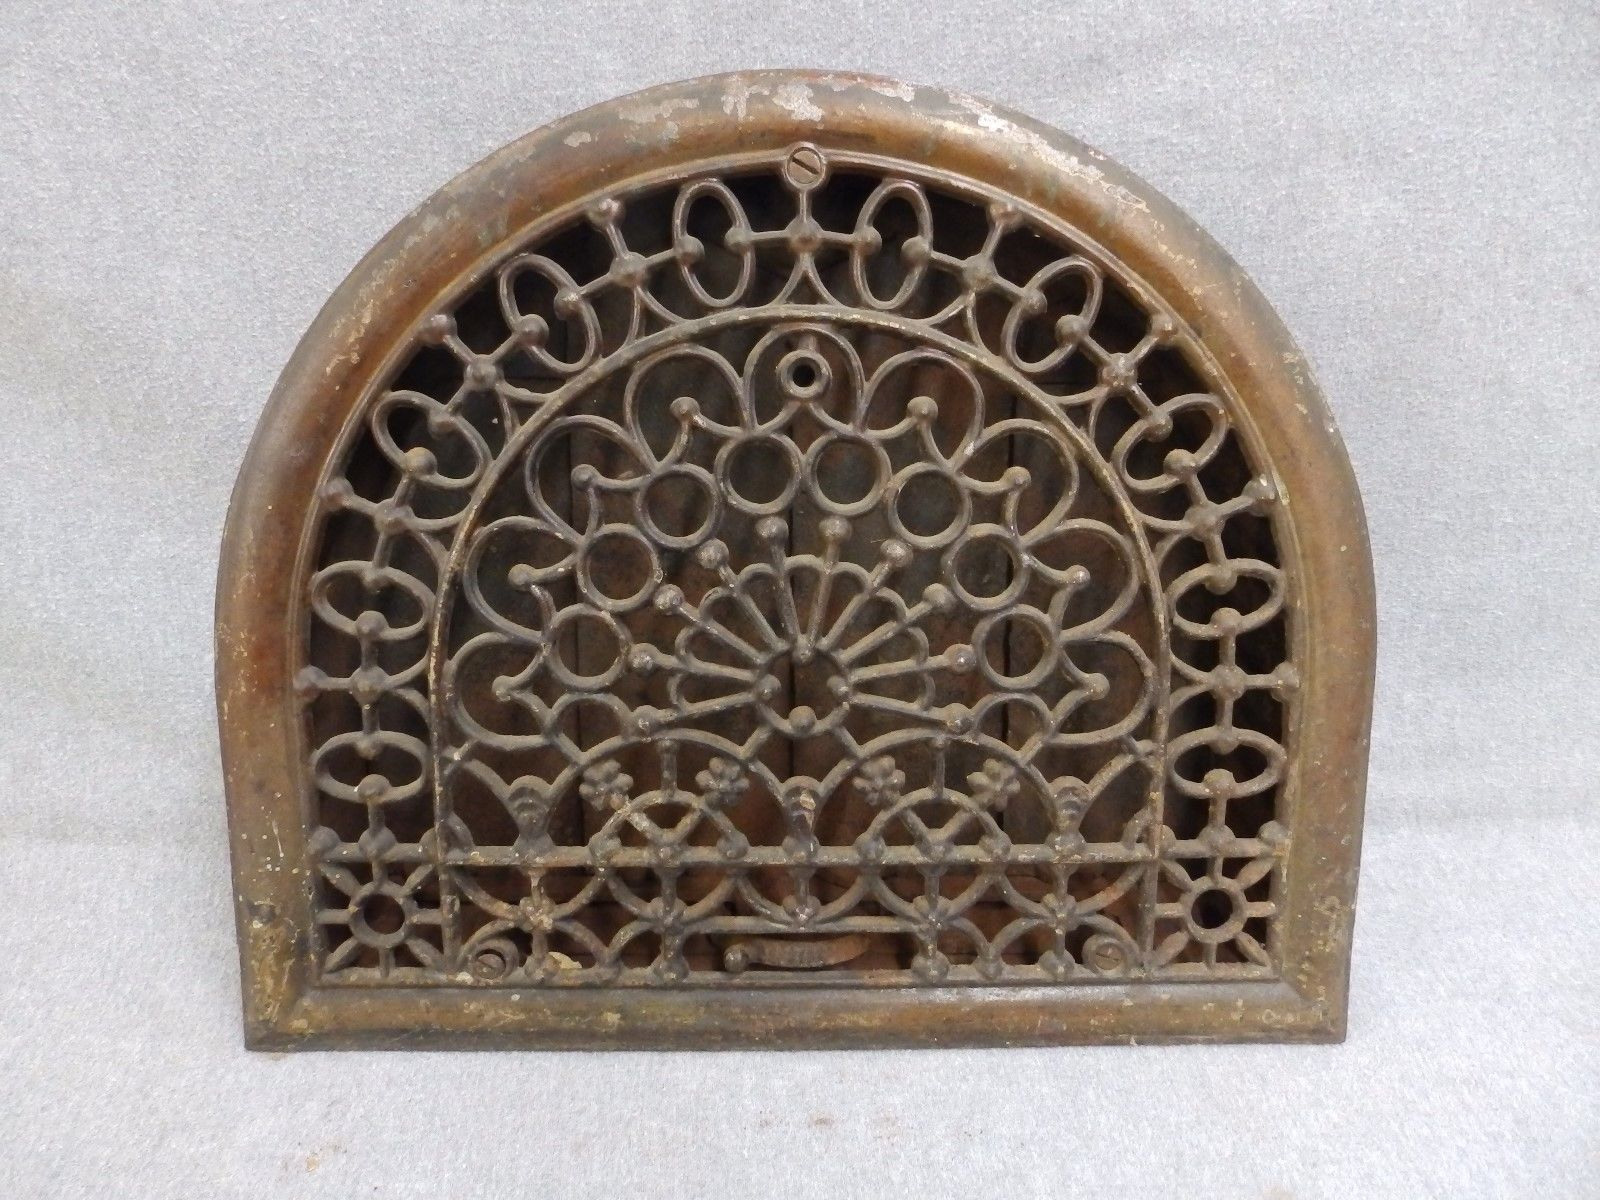 Decorative Grates Registers Antique Cast Iron Arch Top Dome Heat Grate Wall Register Old